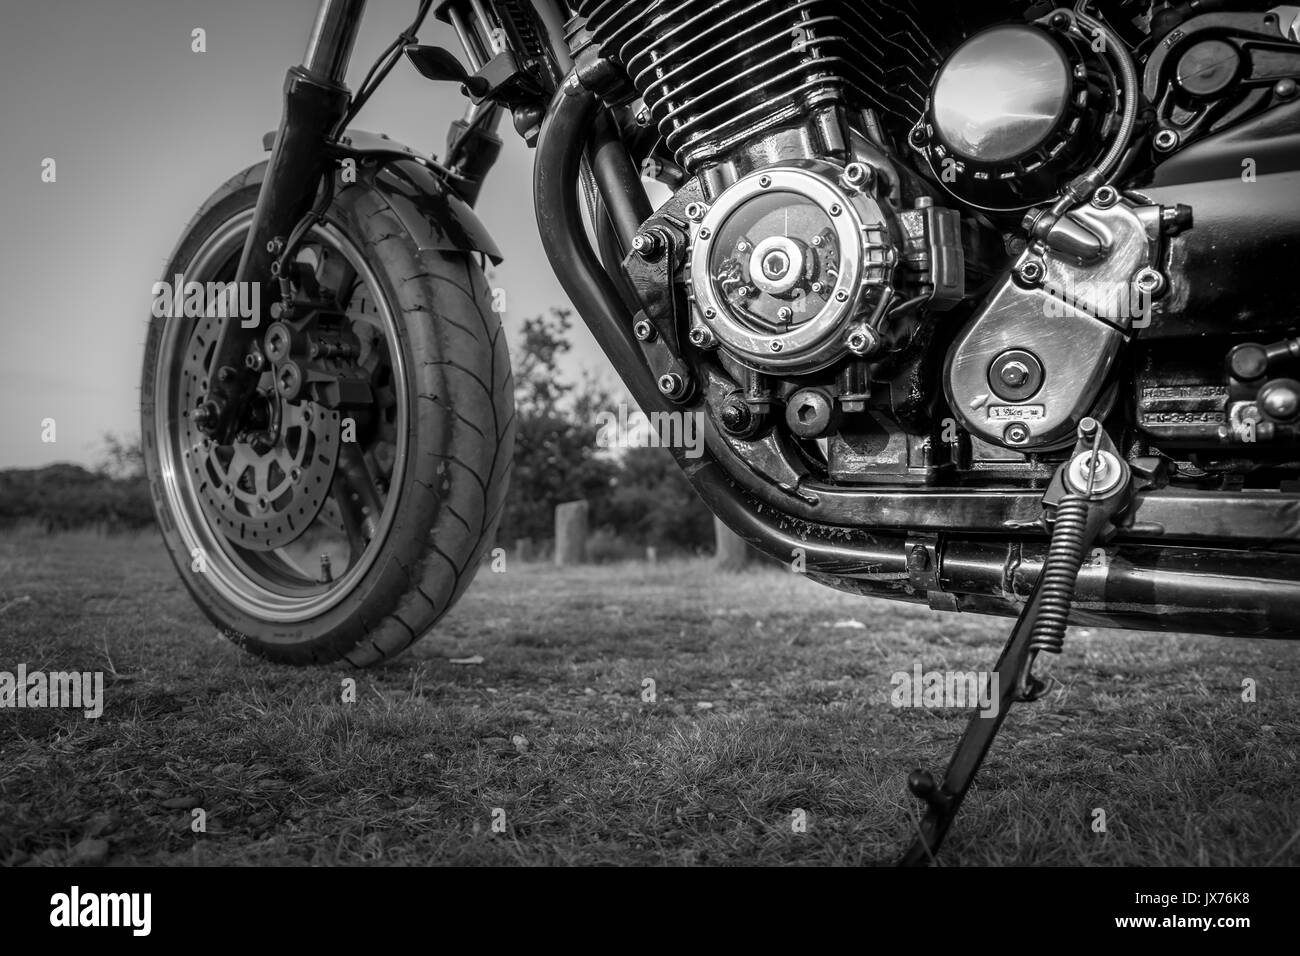 A close up shot of a custom made motorbike in black and white - Stock Image